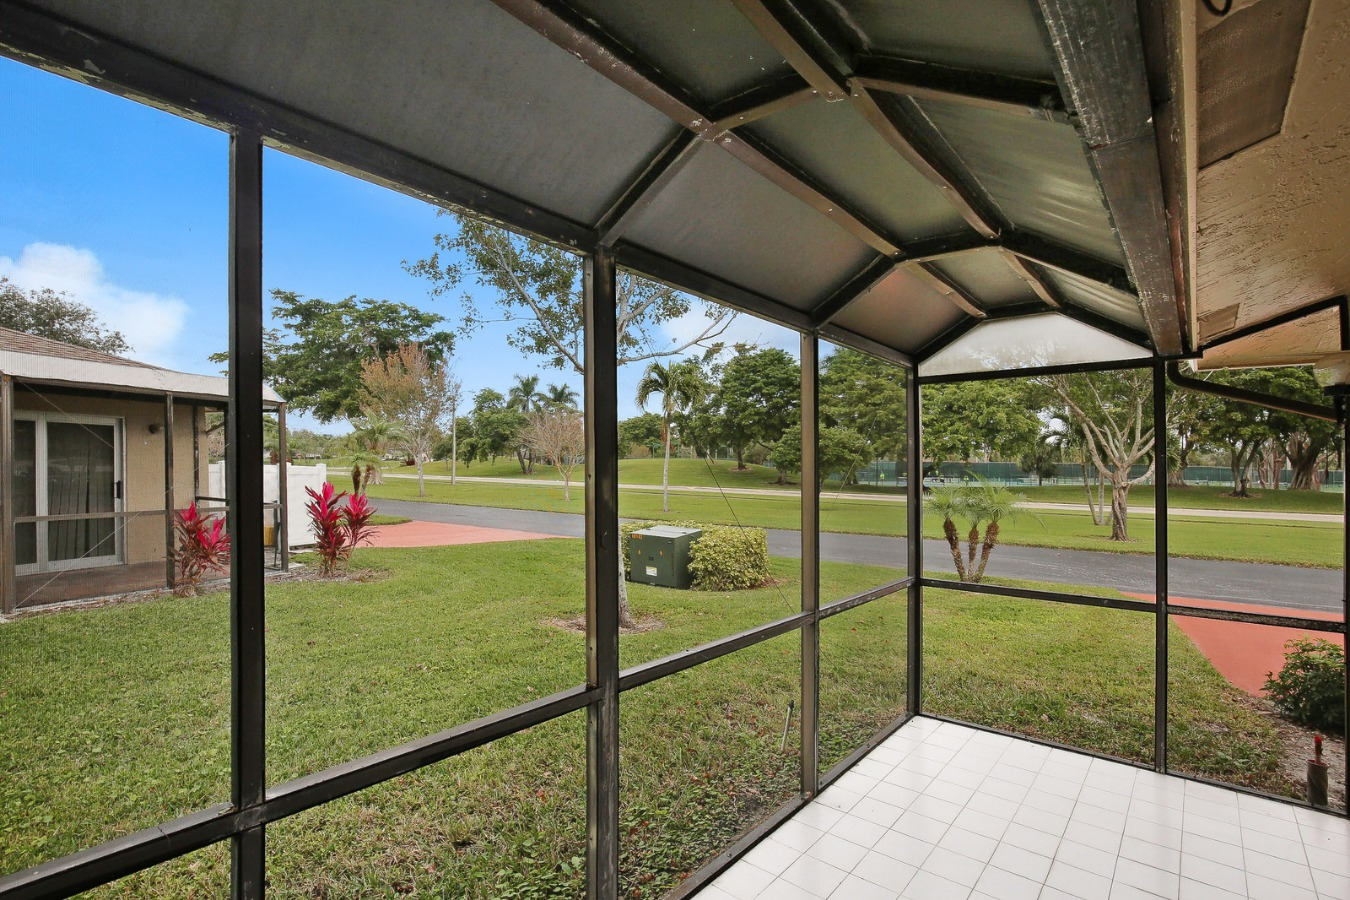 Covered Screened In Patio